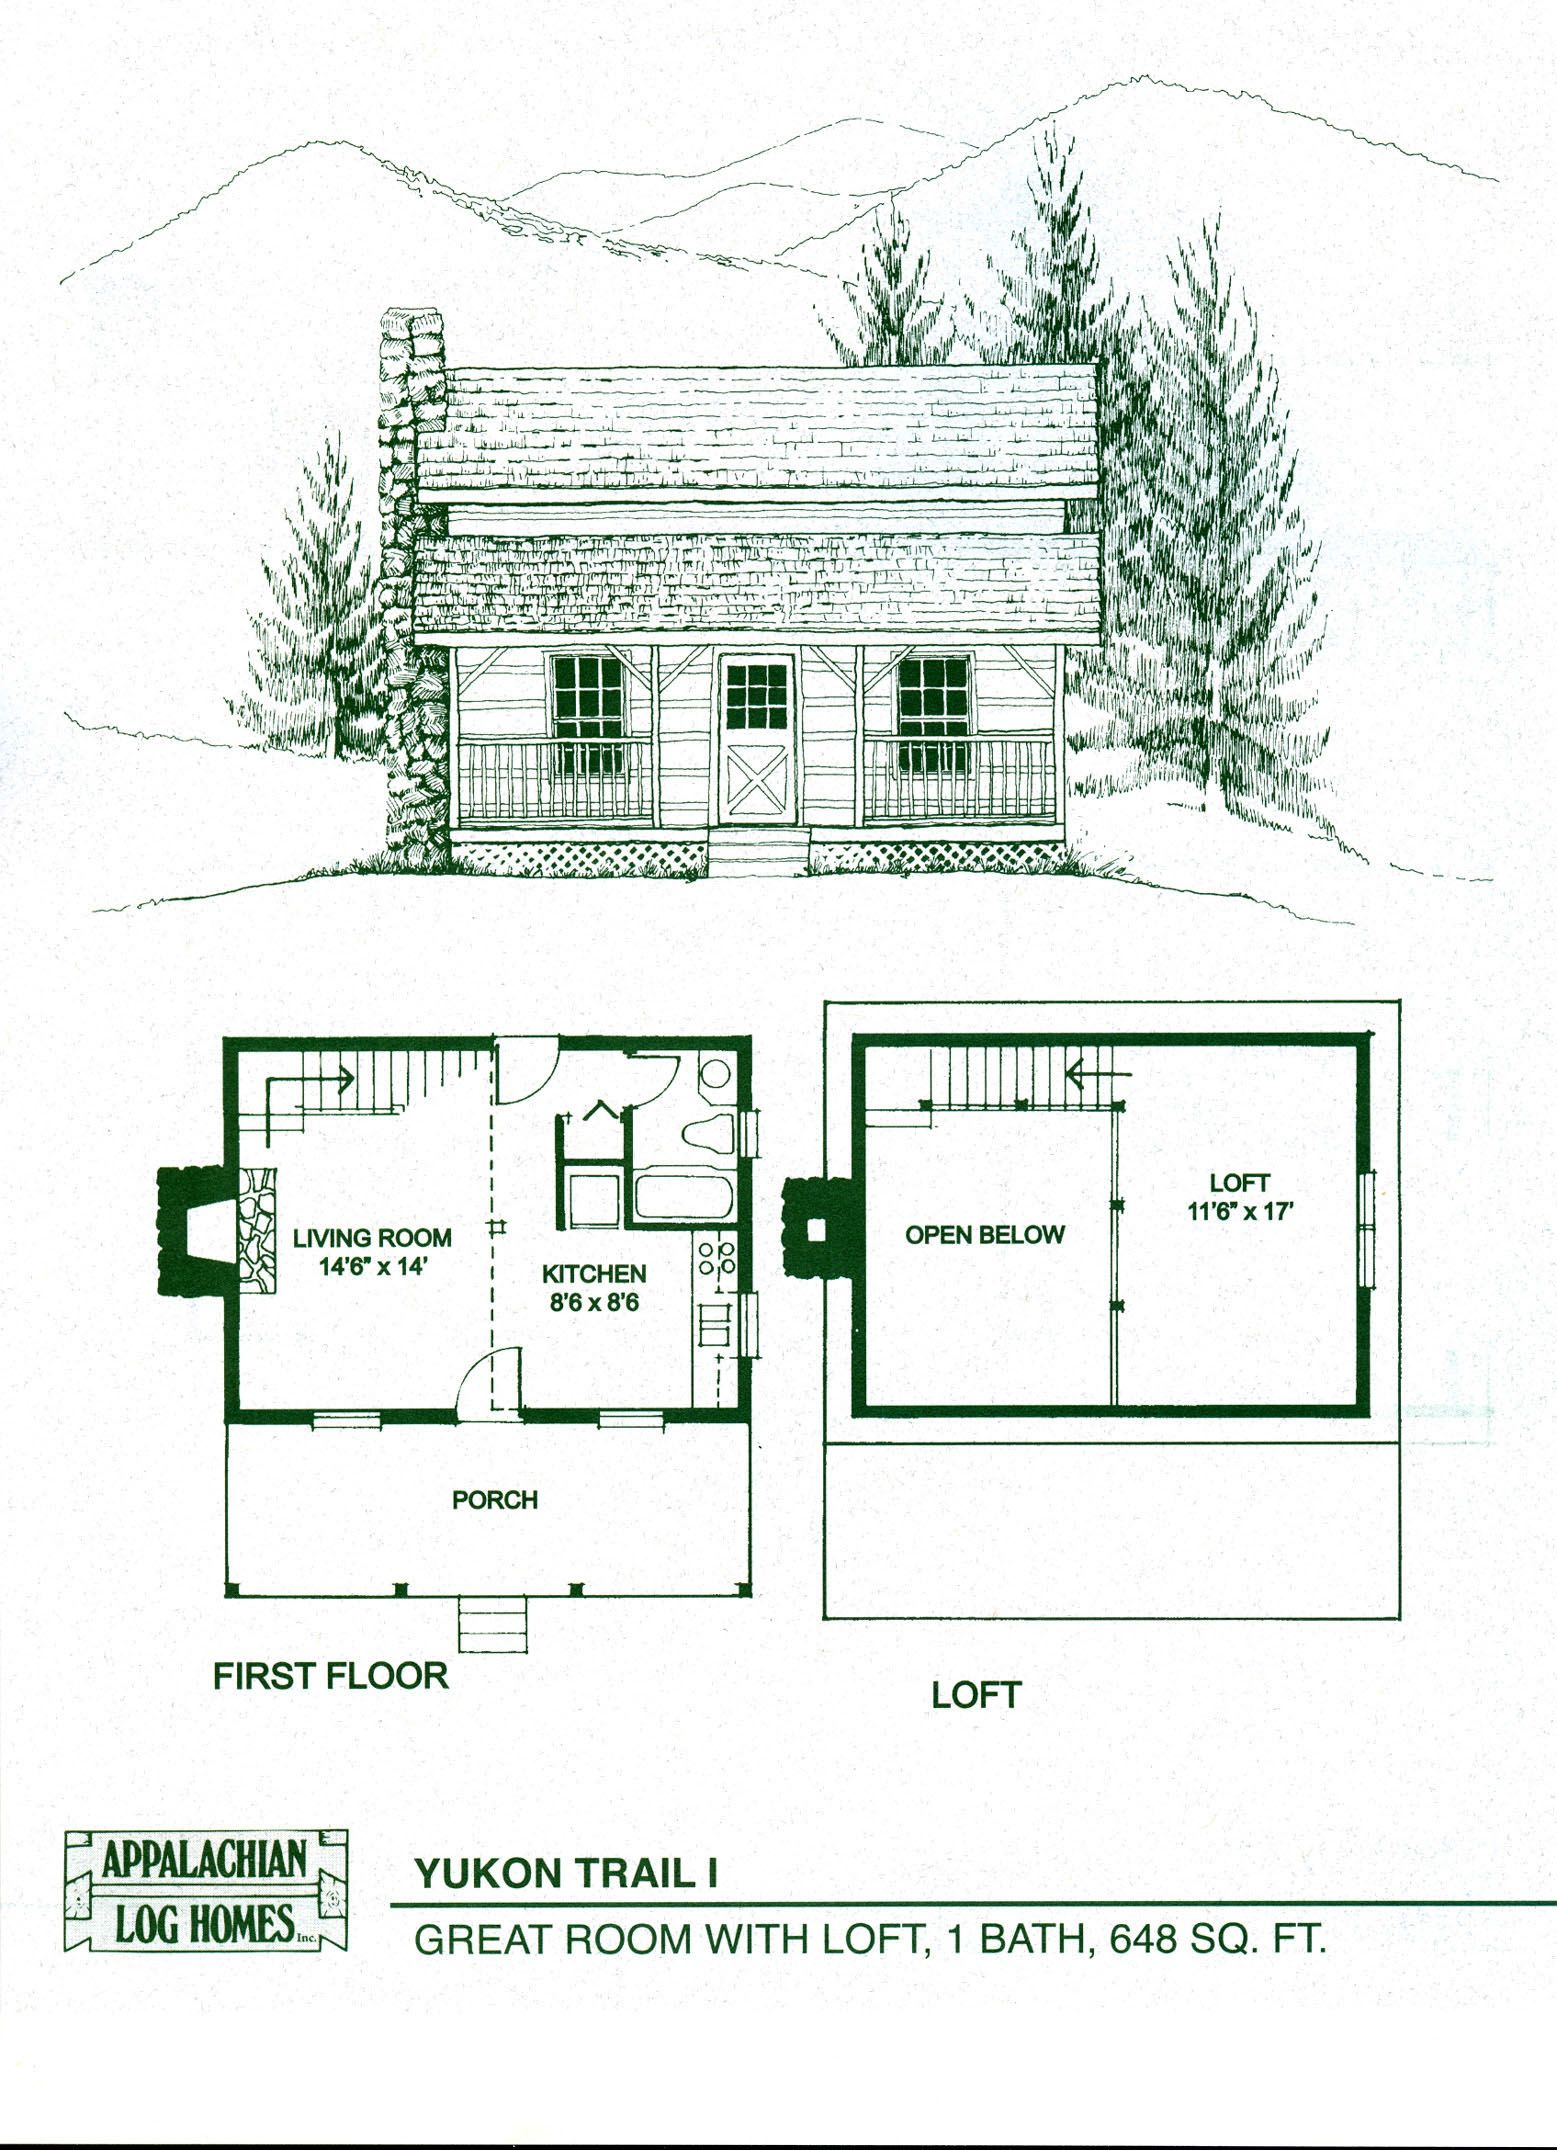 Log home floor plans log cabin kits appalachian log for Cabin floor plans free